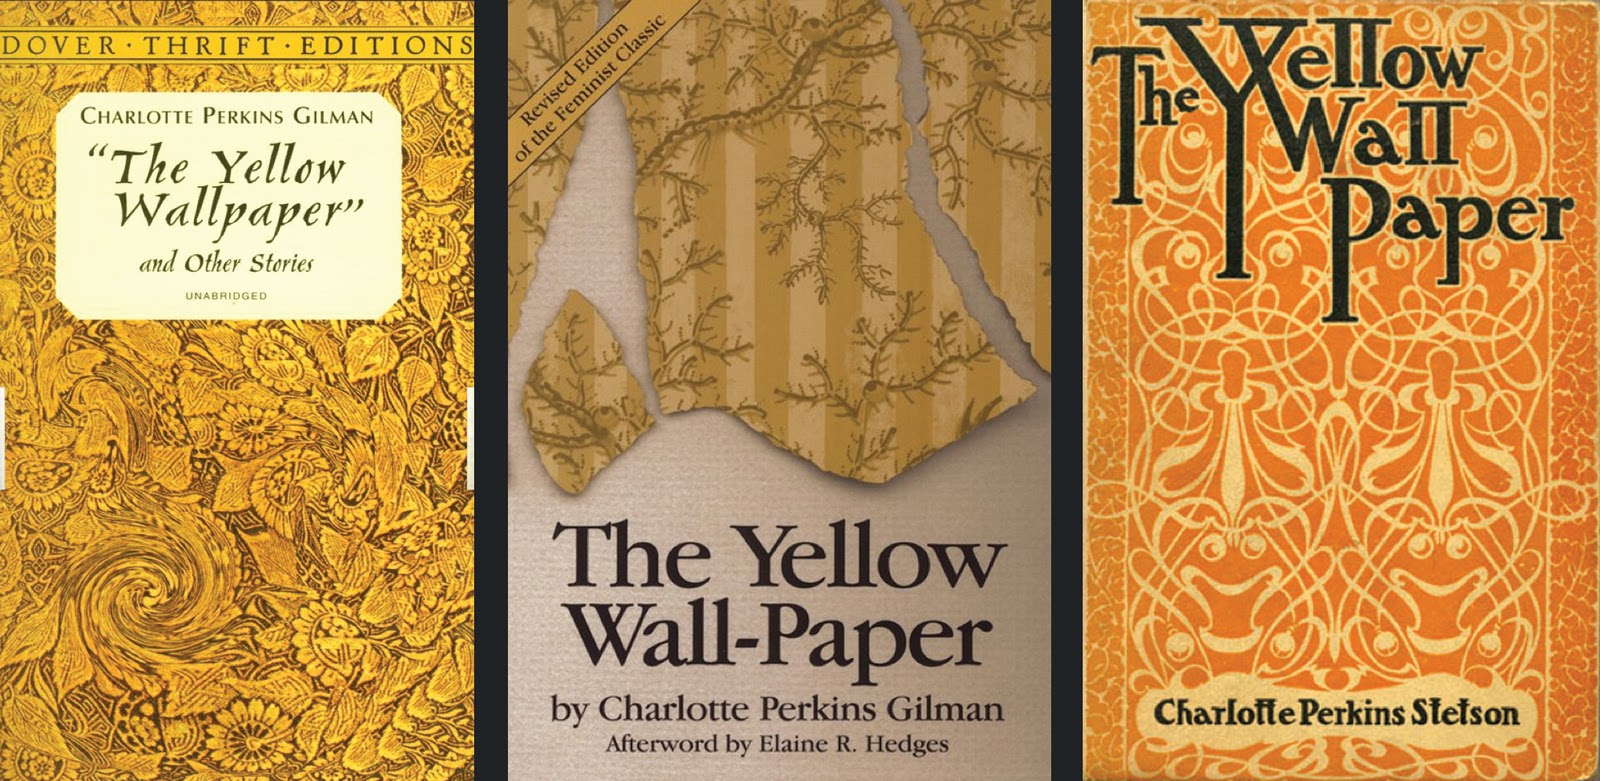 literature wallpaper yellow - photo #14